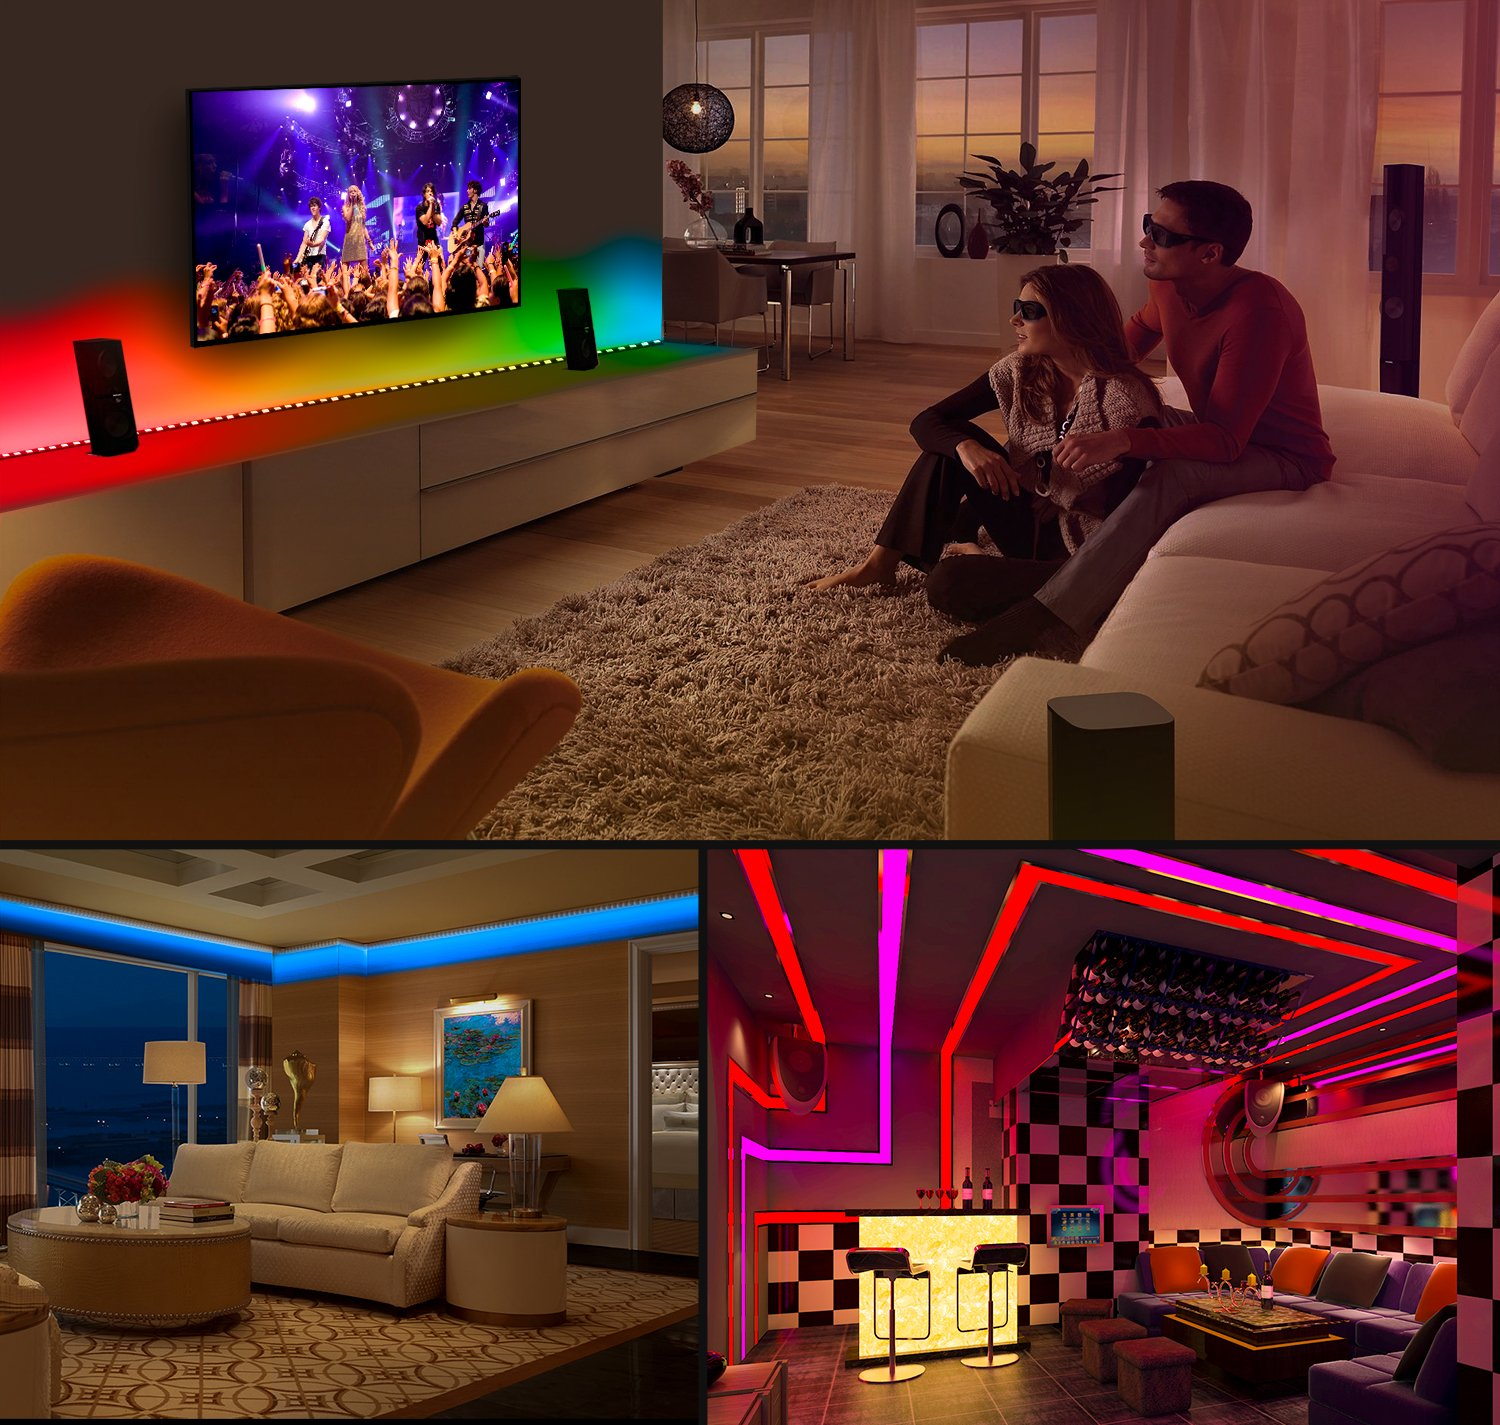 MINGER Dreamcolor 16.4ft/5M RGB LED Strip Lights with Alexa, WiFi Wireless Smart Phone APP Controlled Neon Light Strip Waterproof Tape Lighting Kit with Power Supply, No Hub Required